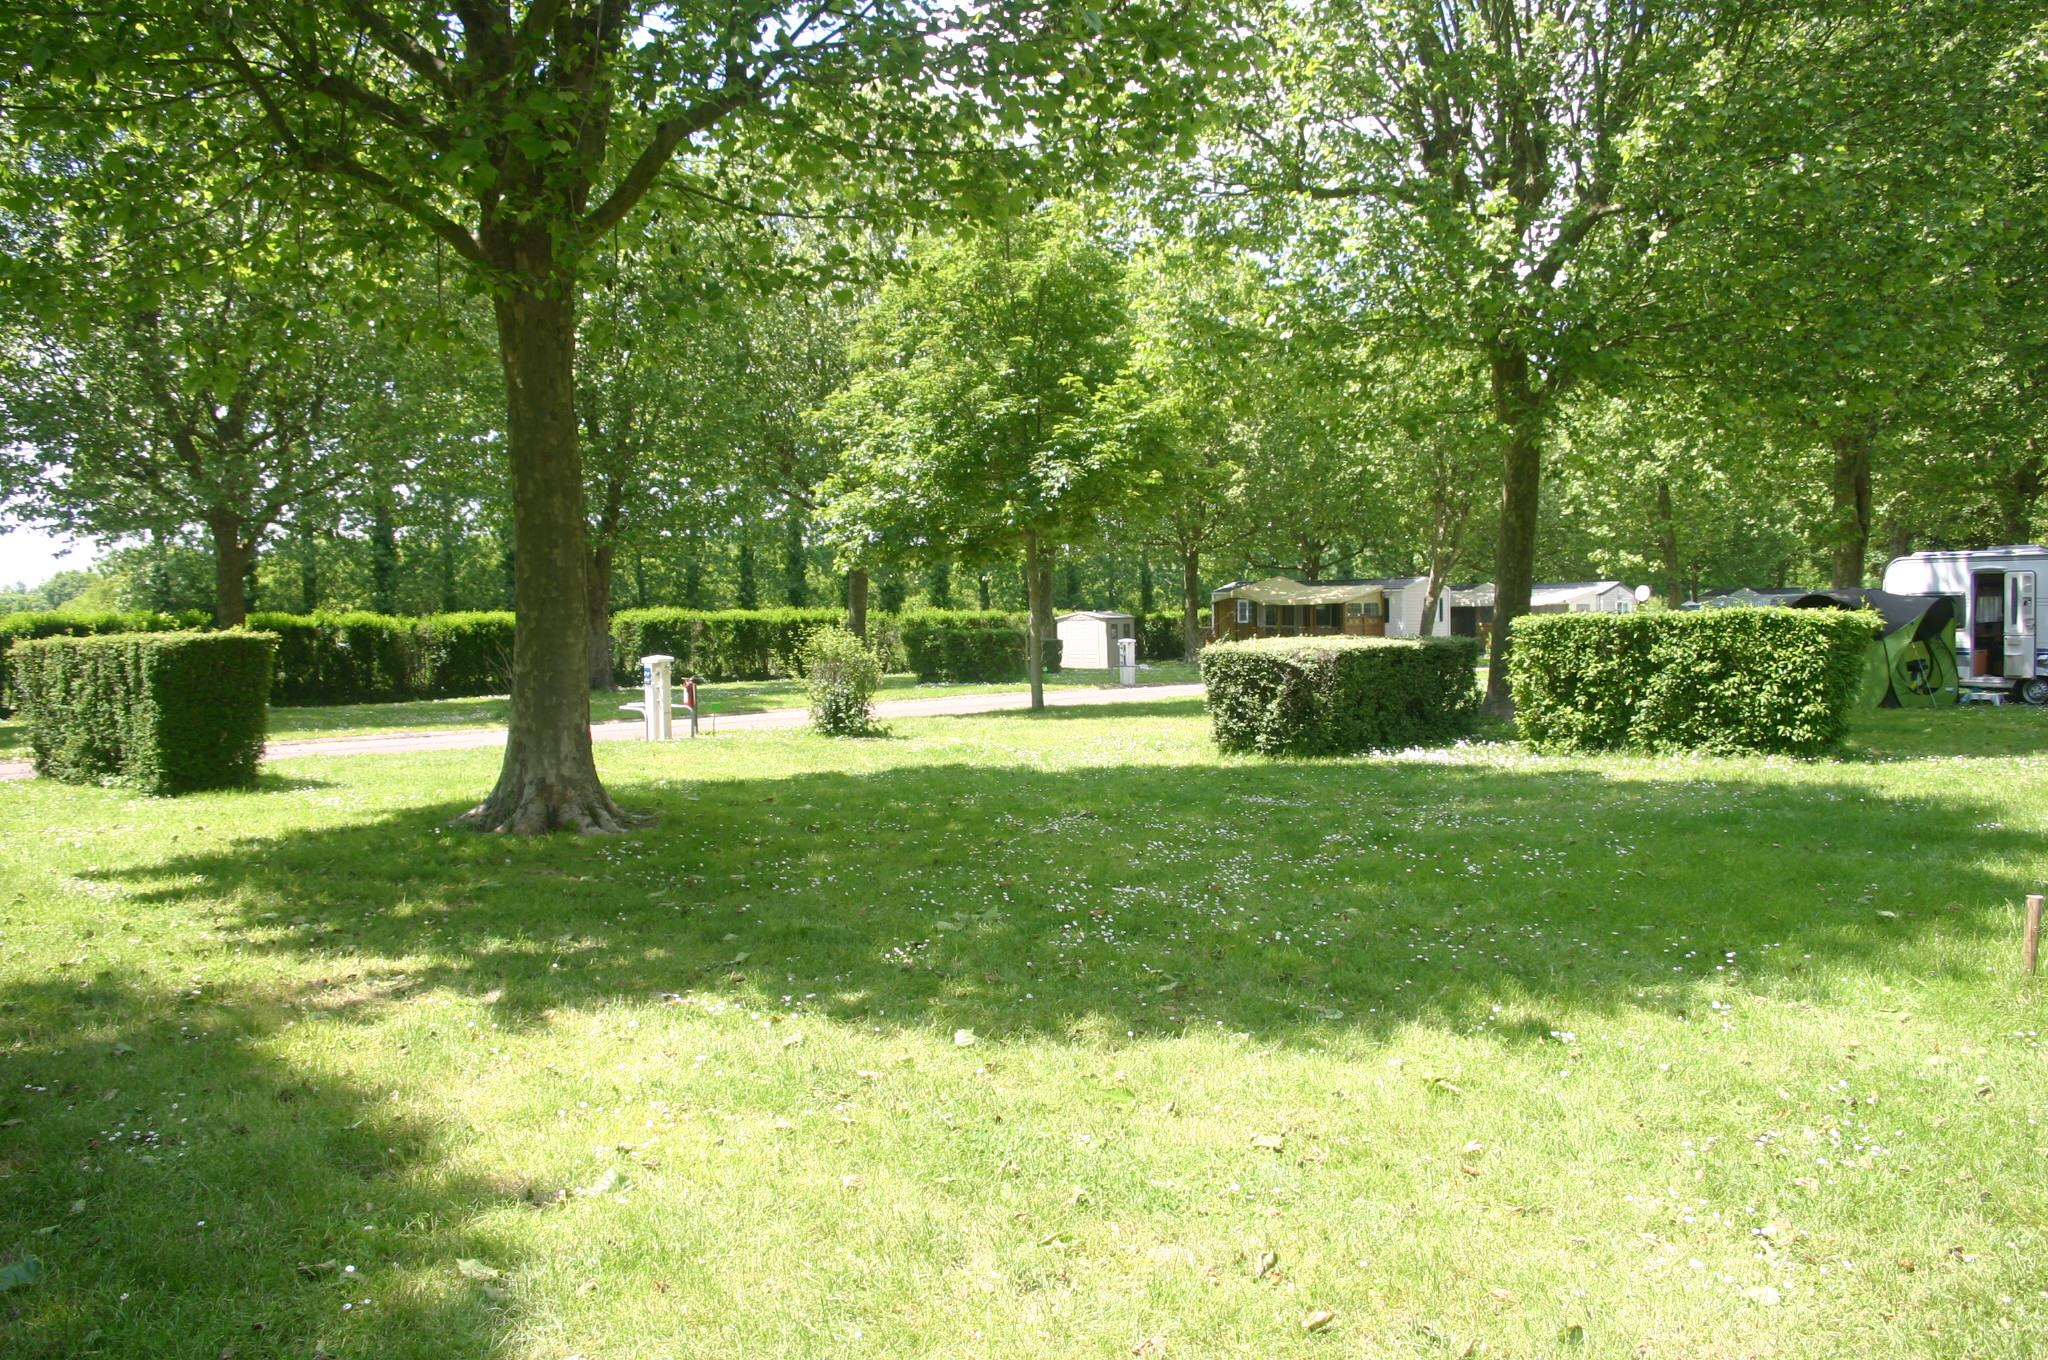 Emplacement - Forfait Emplacement 2 Pers + Une Installation+ Une Voiture Ou 2 Pers + Camping-Car - Camping Val de Boutonne